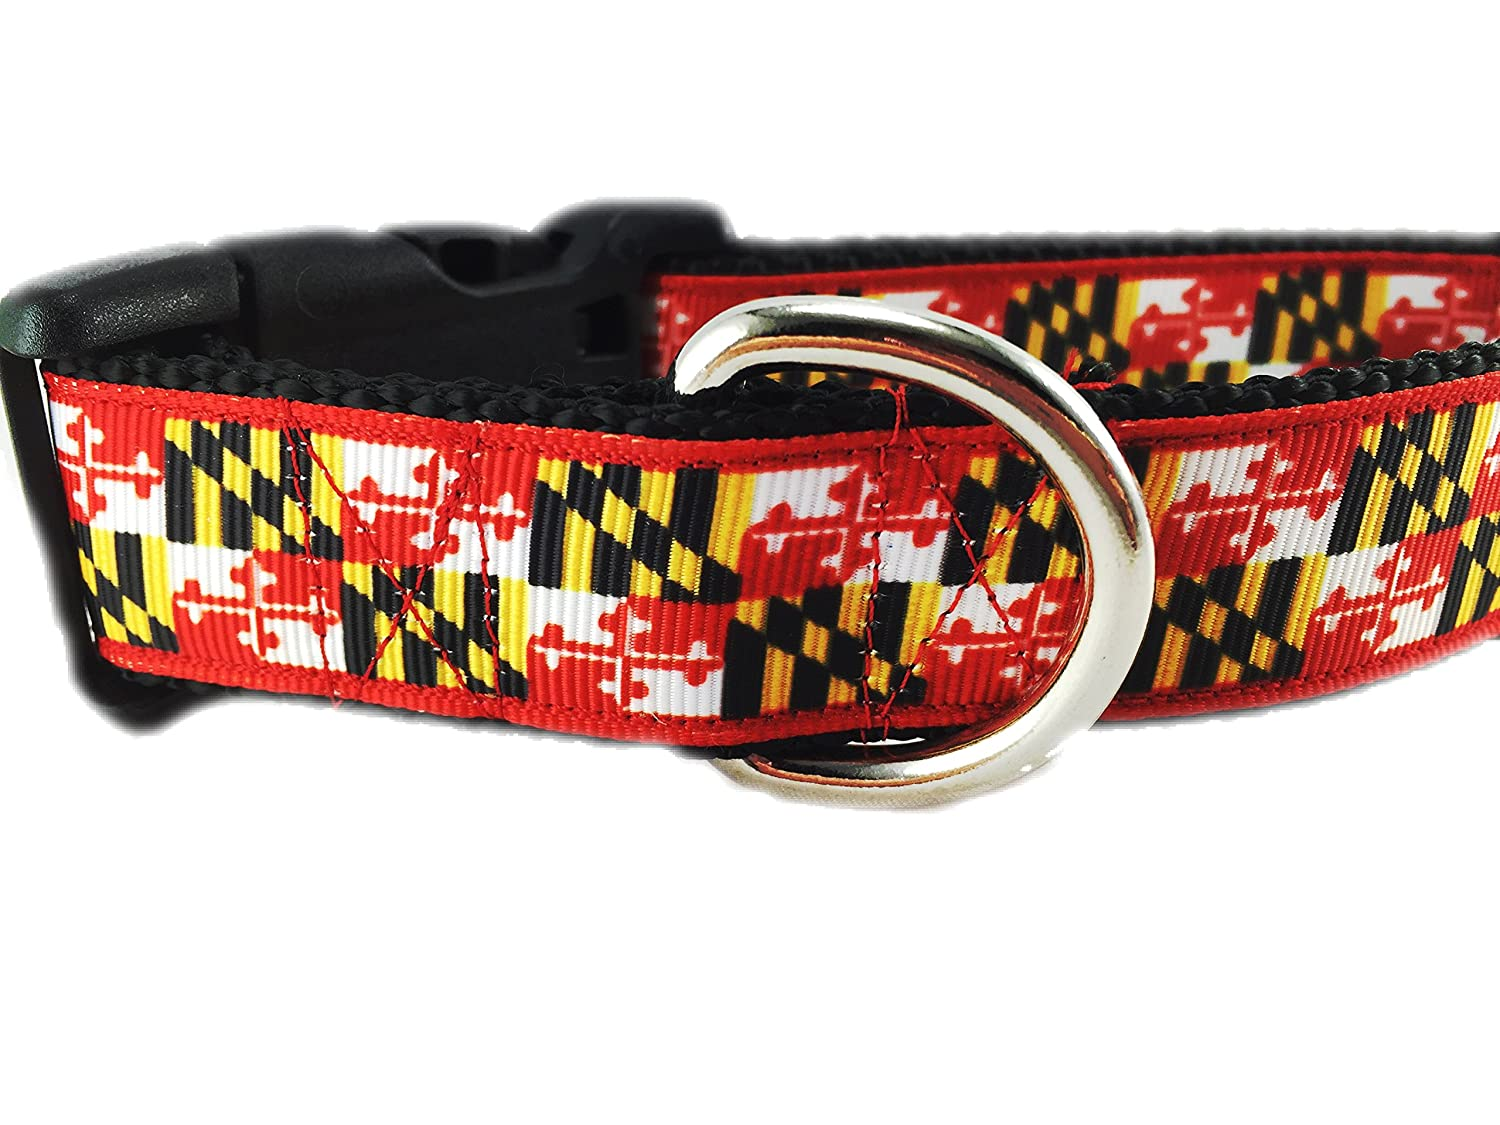 Medium 13-19\ CANINEDESIGN QUALITY DOG COLLARS Caninedesign, Maryland Dog Collar, 1 inch, Nylon, Side Release Buckle, Adjustable, Medium 13-19 inches